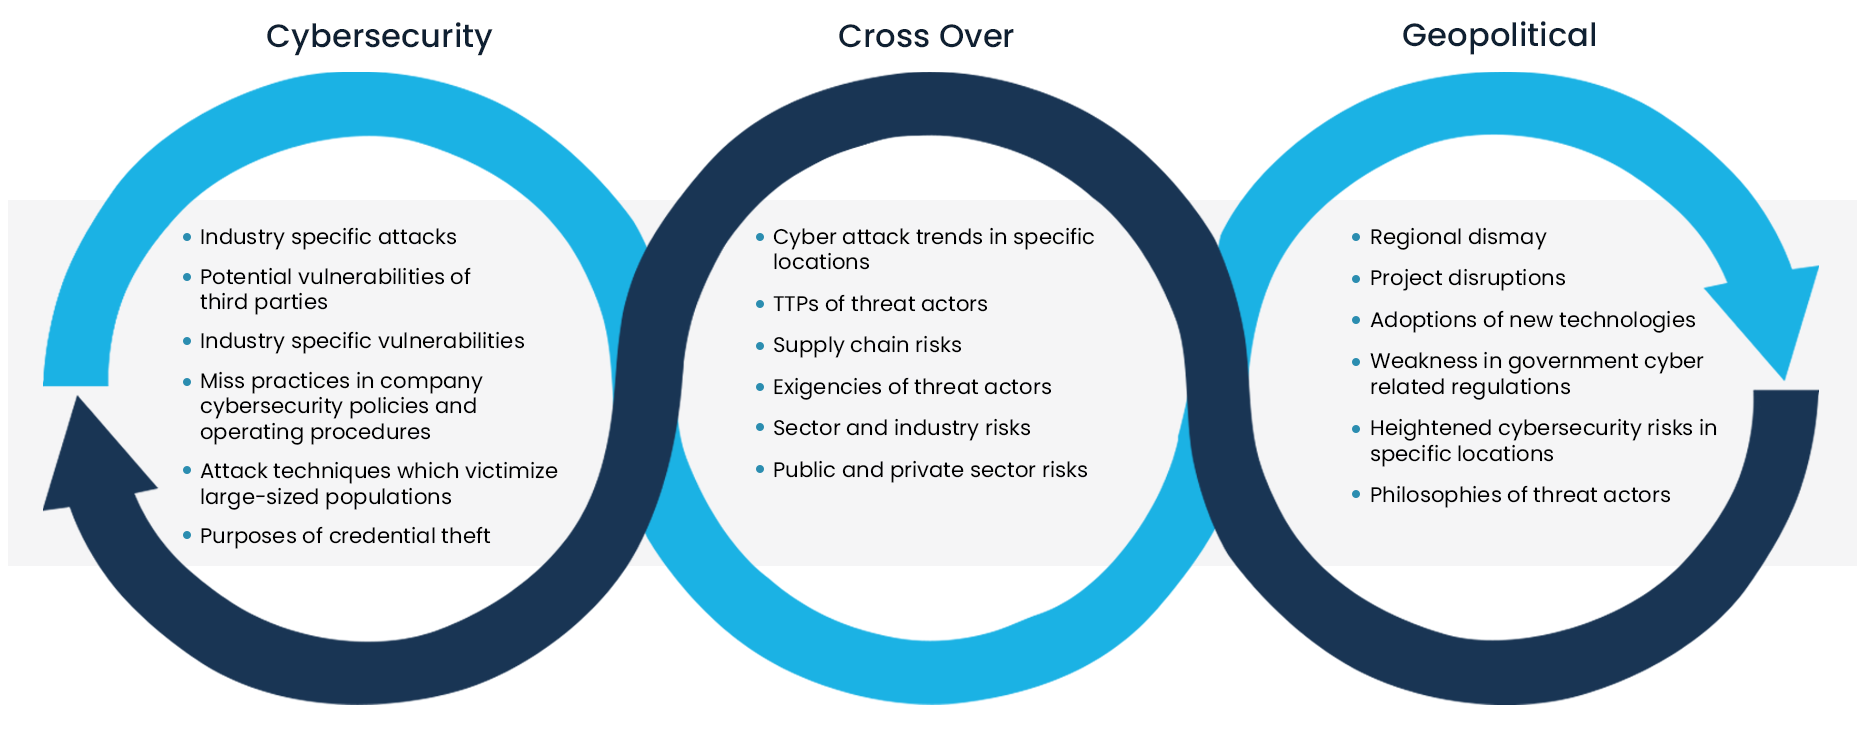 How STIX Cyber Campaigns Provide Intel on Geopolitical Risks and Cybersecurity Risks